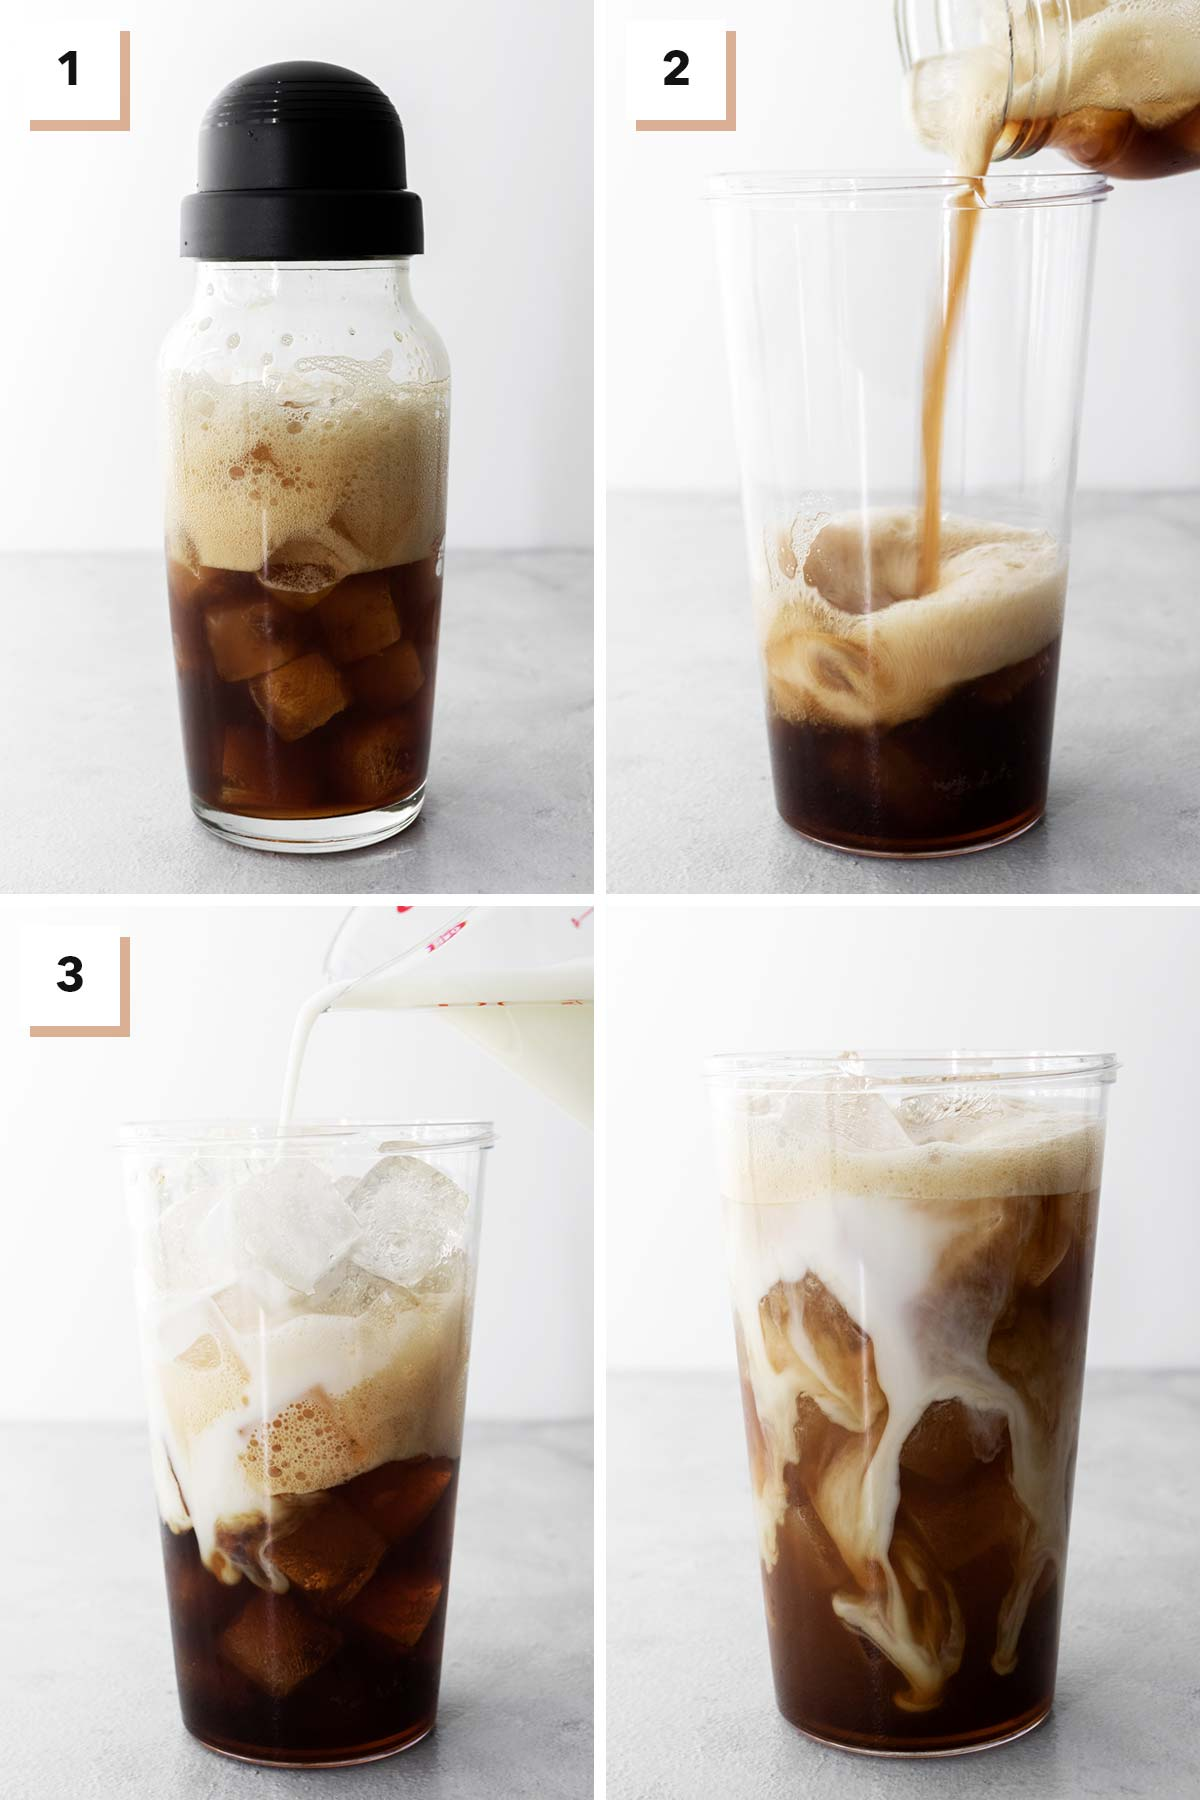 Four photo collage showing steps to make Starbucks Iced Shaken Espresso drink at home.